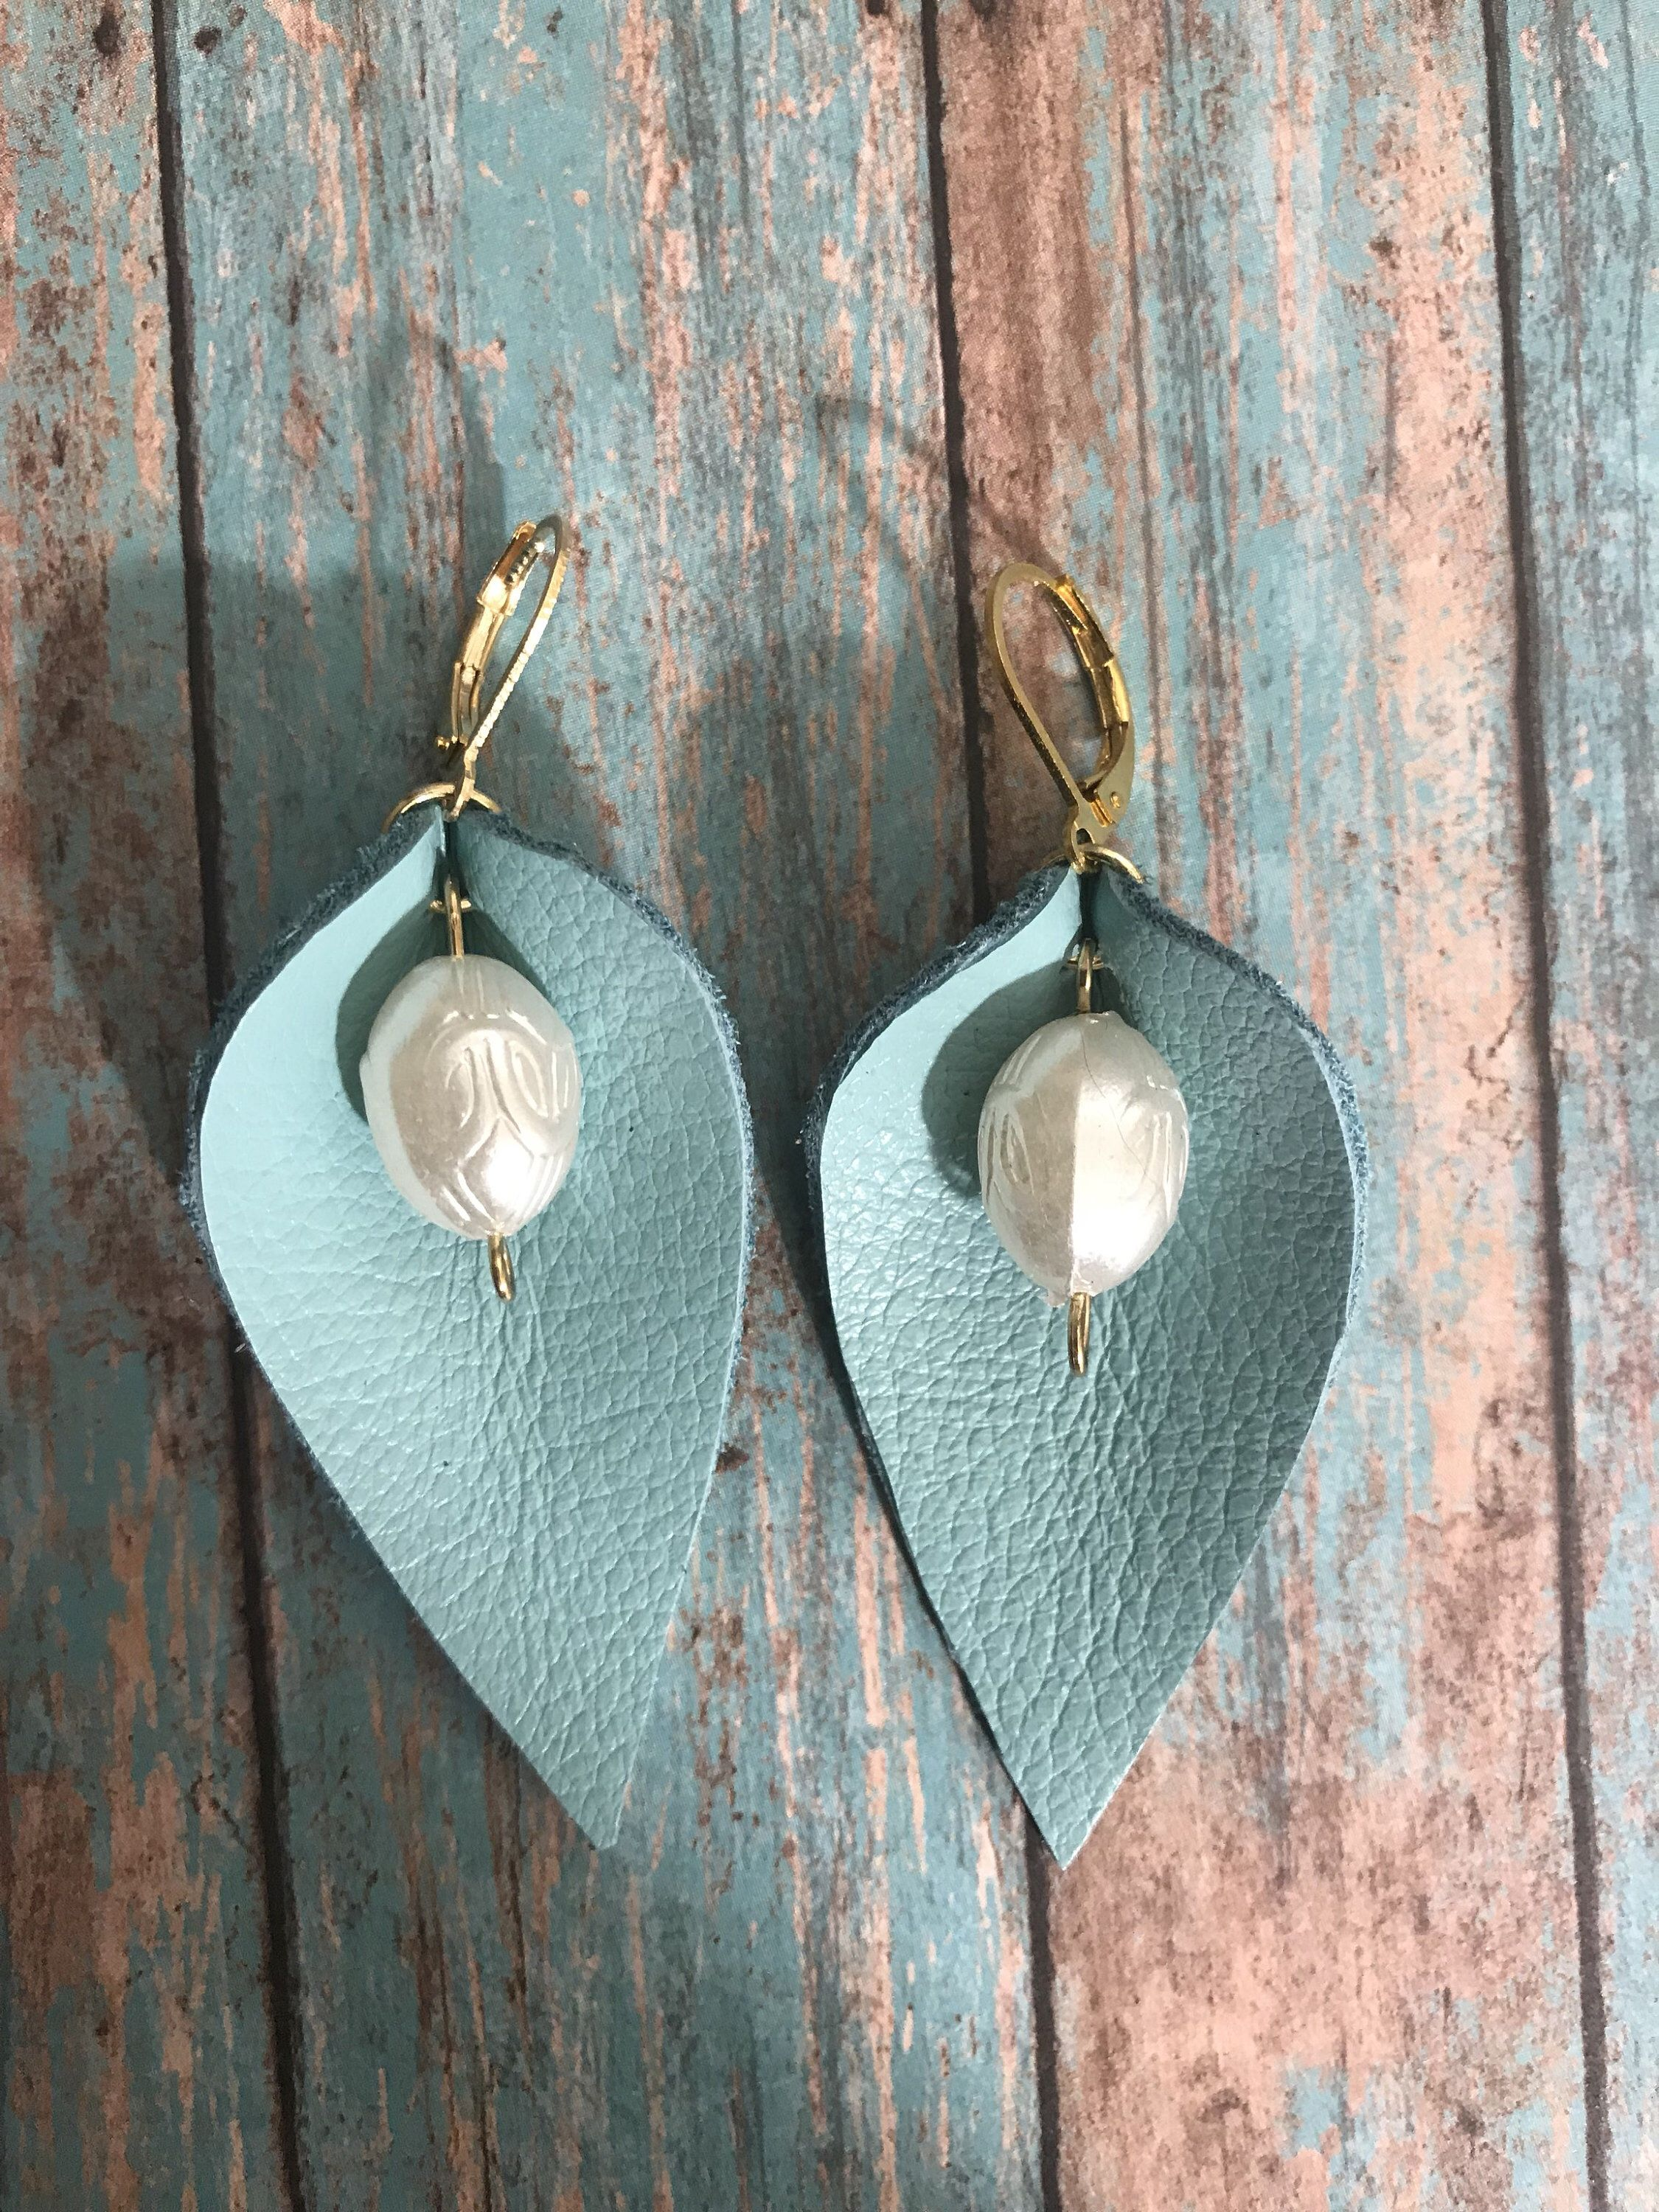 Photo of Leather earrings, real leather, leather with bead earrings, leaf earrings, petal earrings, Joanna Gaines inspired, Boho, by Creative Ahoy